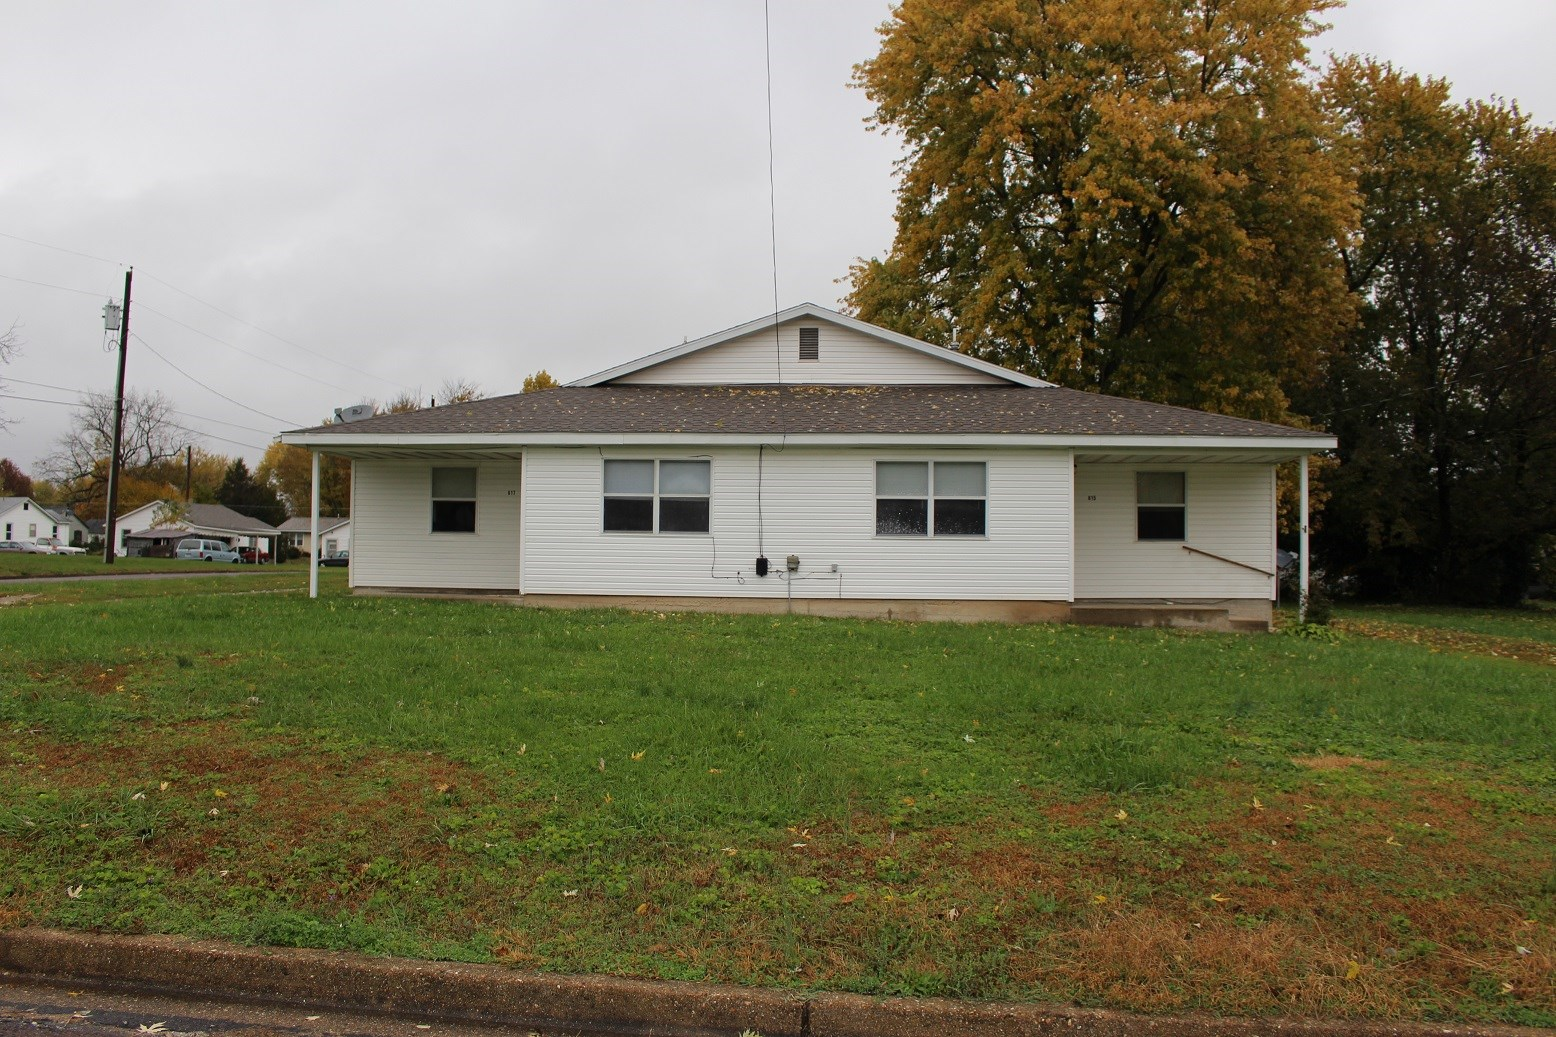 Duplex for Sale in Southern Missouri